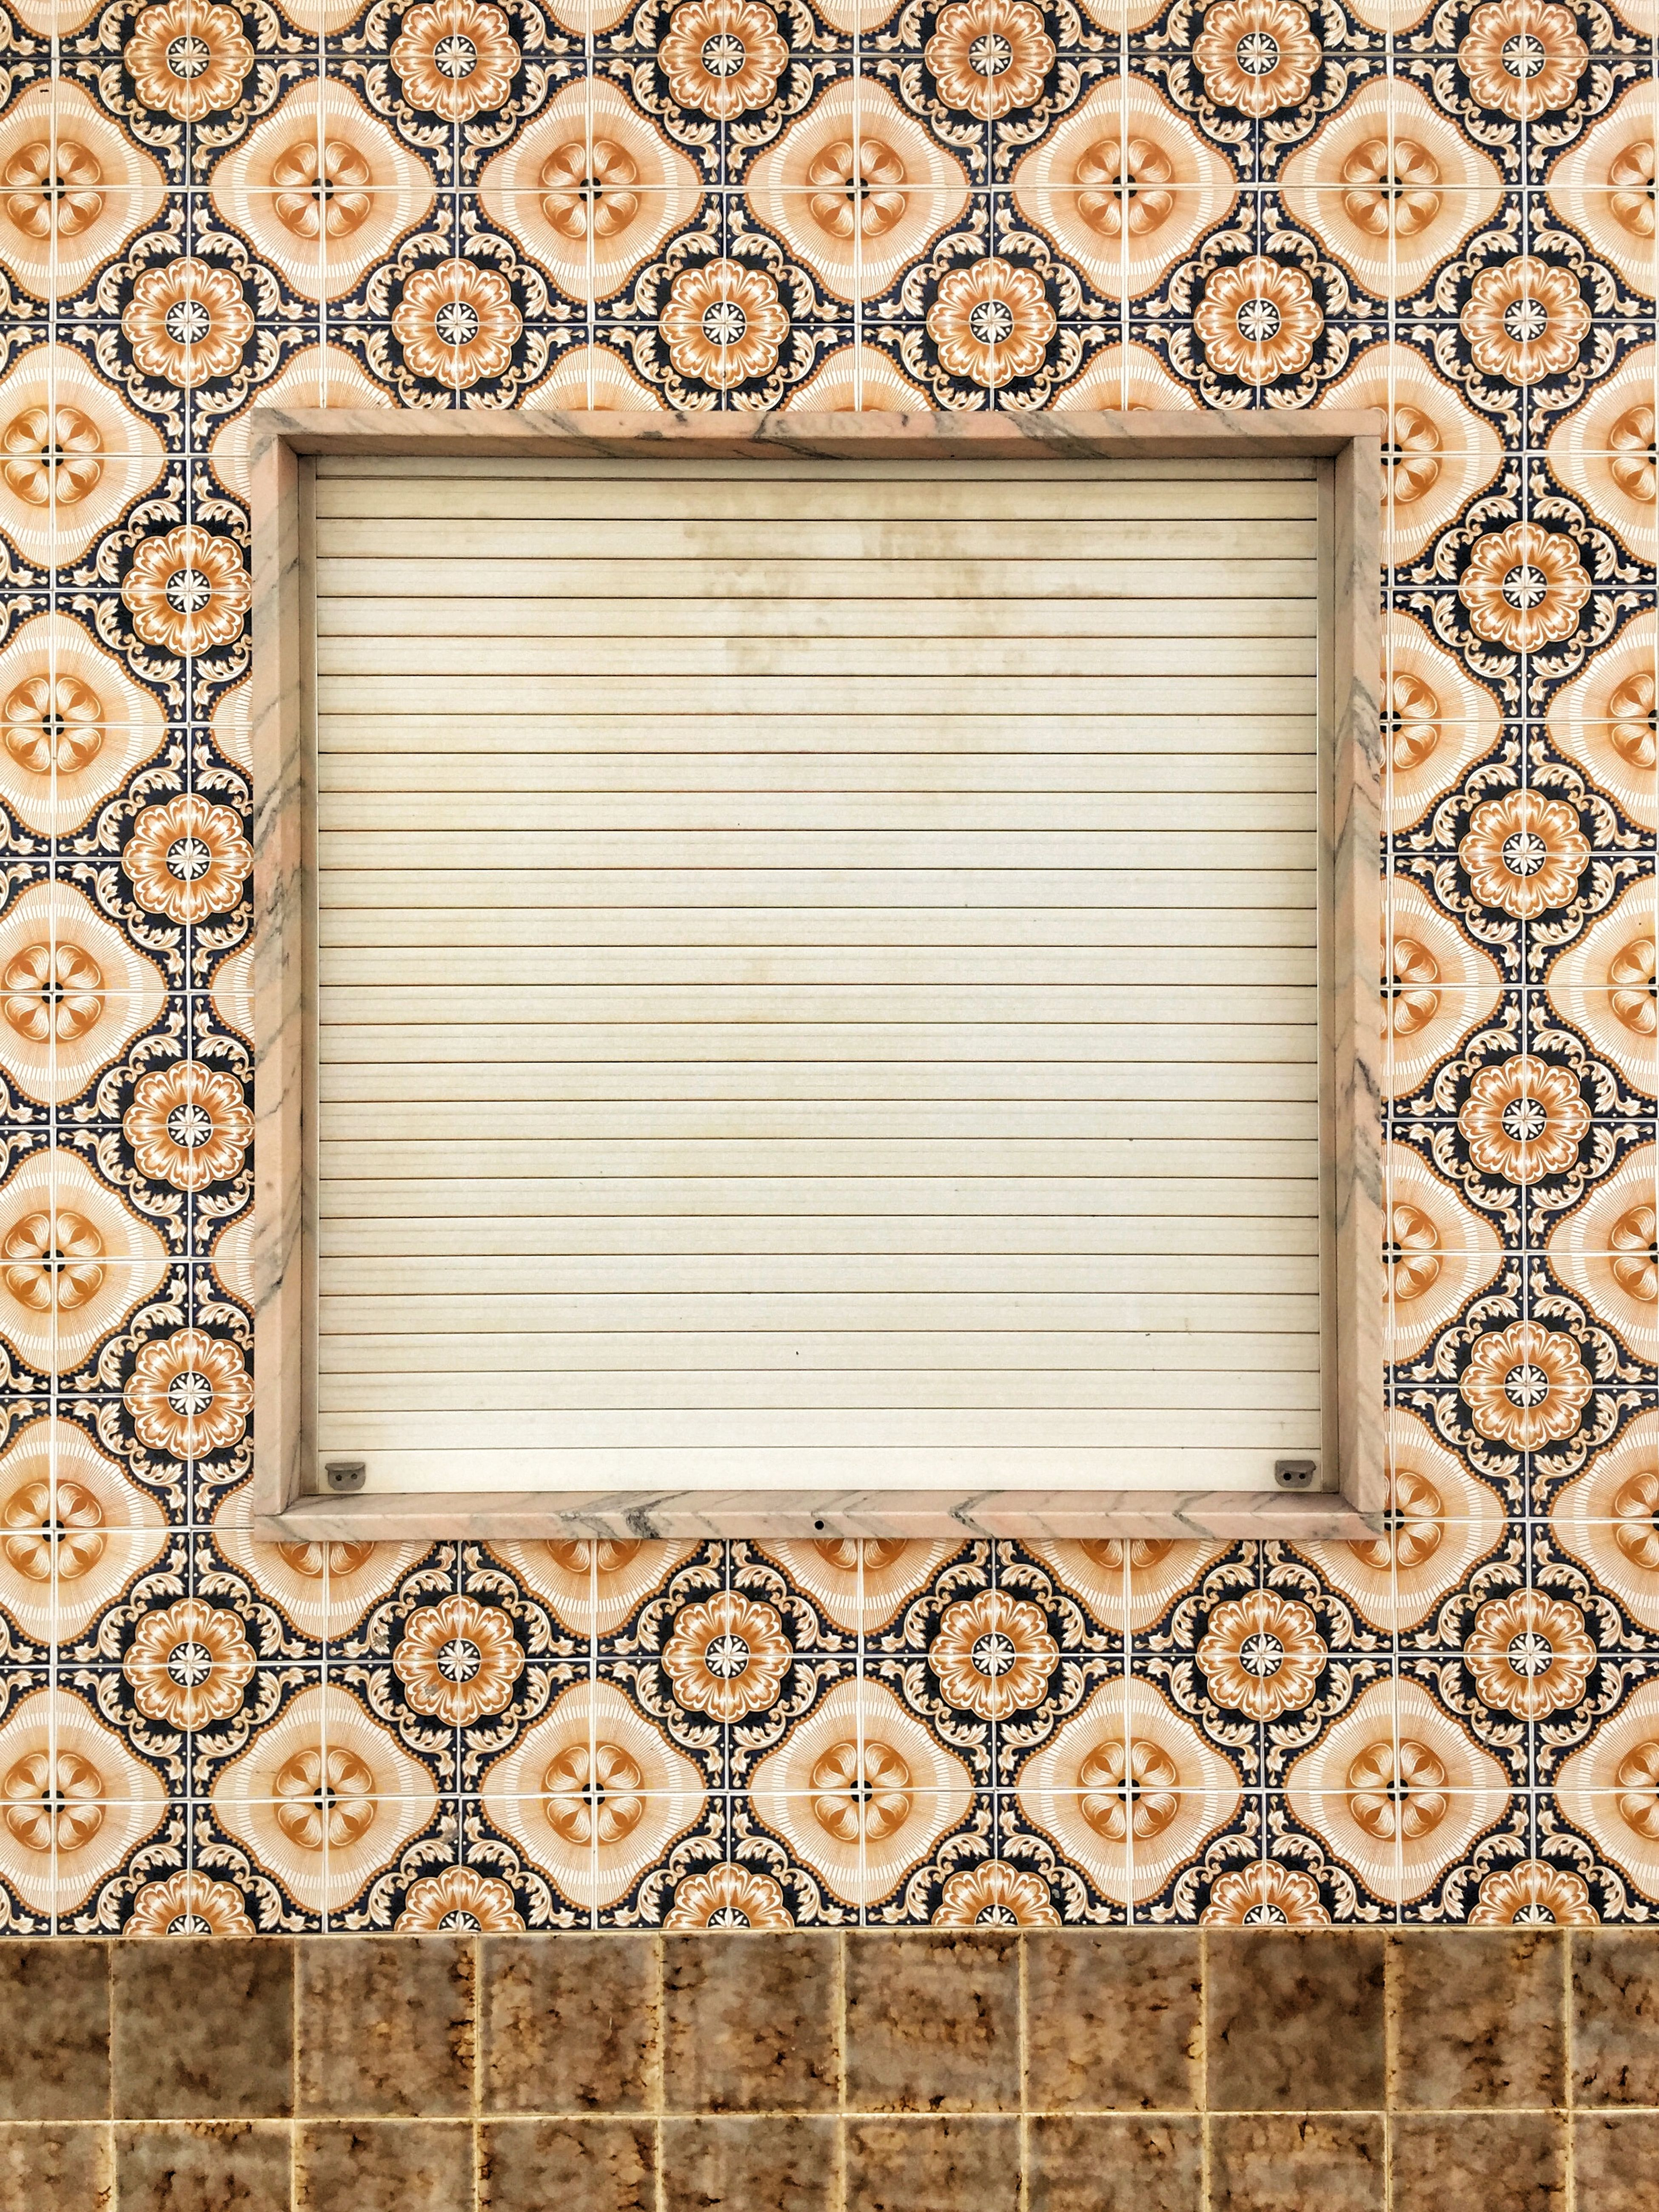 Azulejos and one Question What's Behind The Blinds? Window Symmetrical Tiles Costa Vicentina Algarve Portugaligers Portugal_lovers